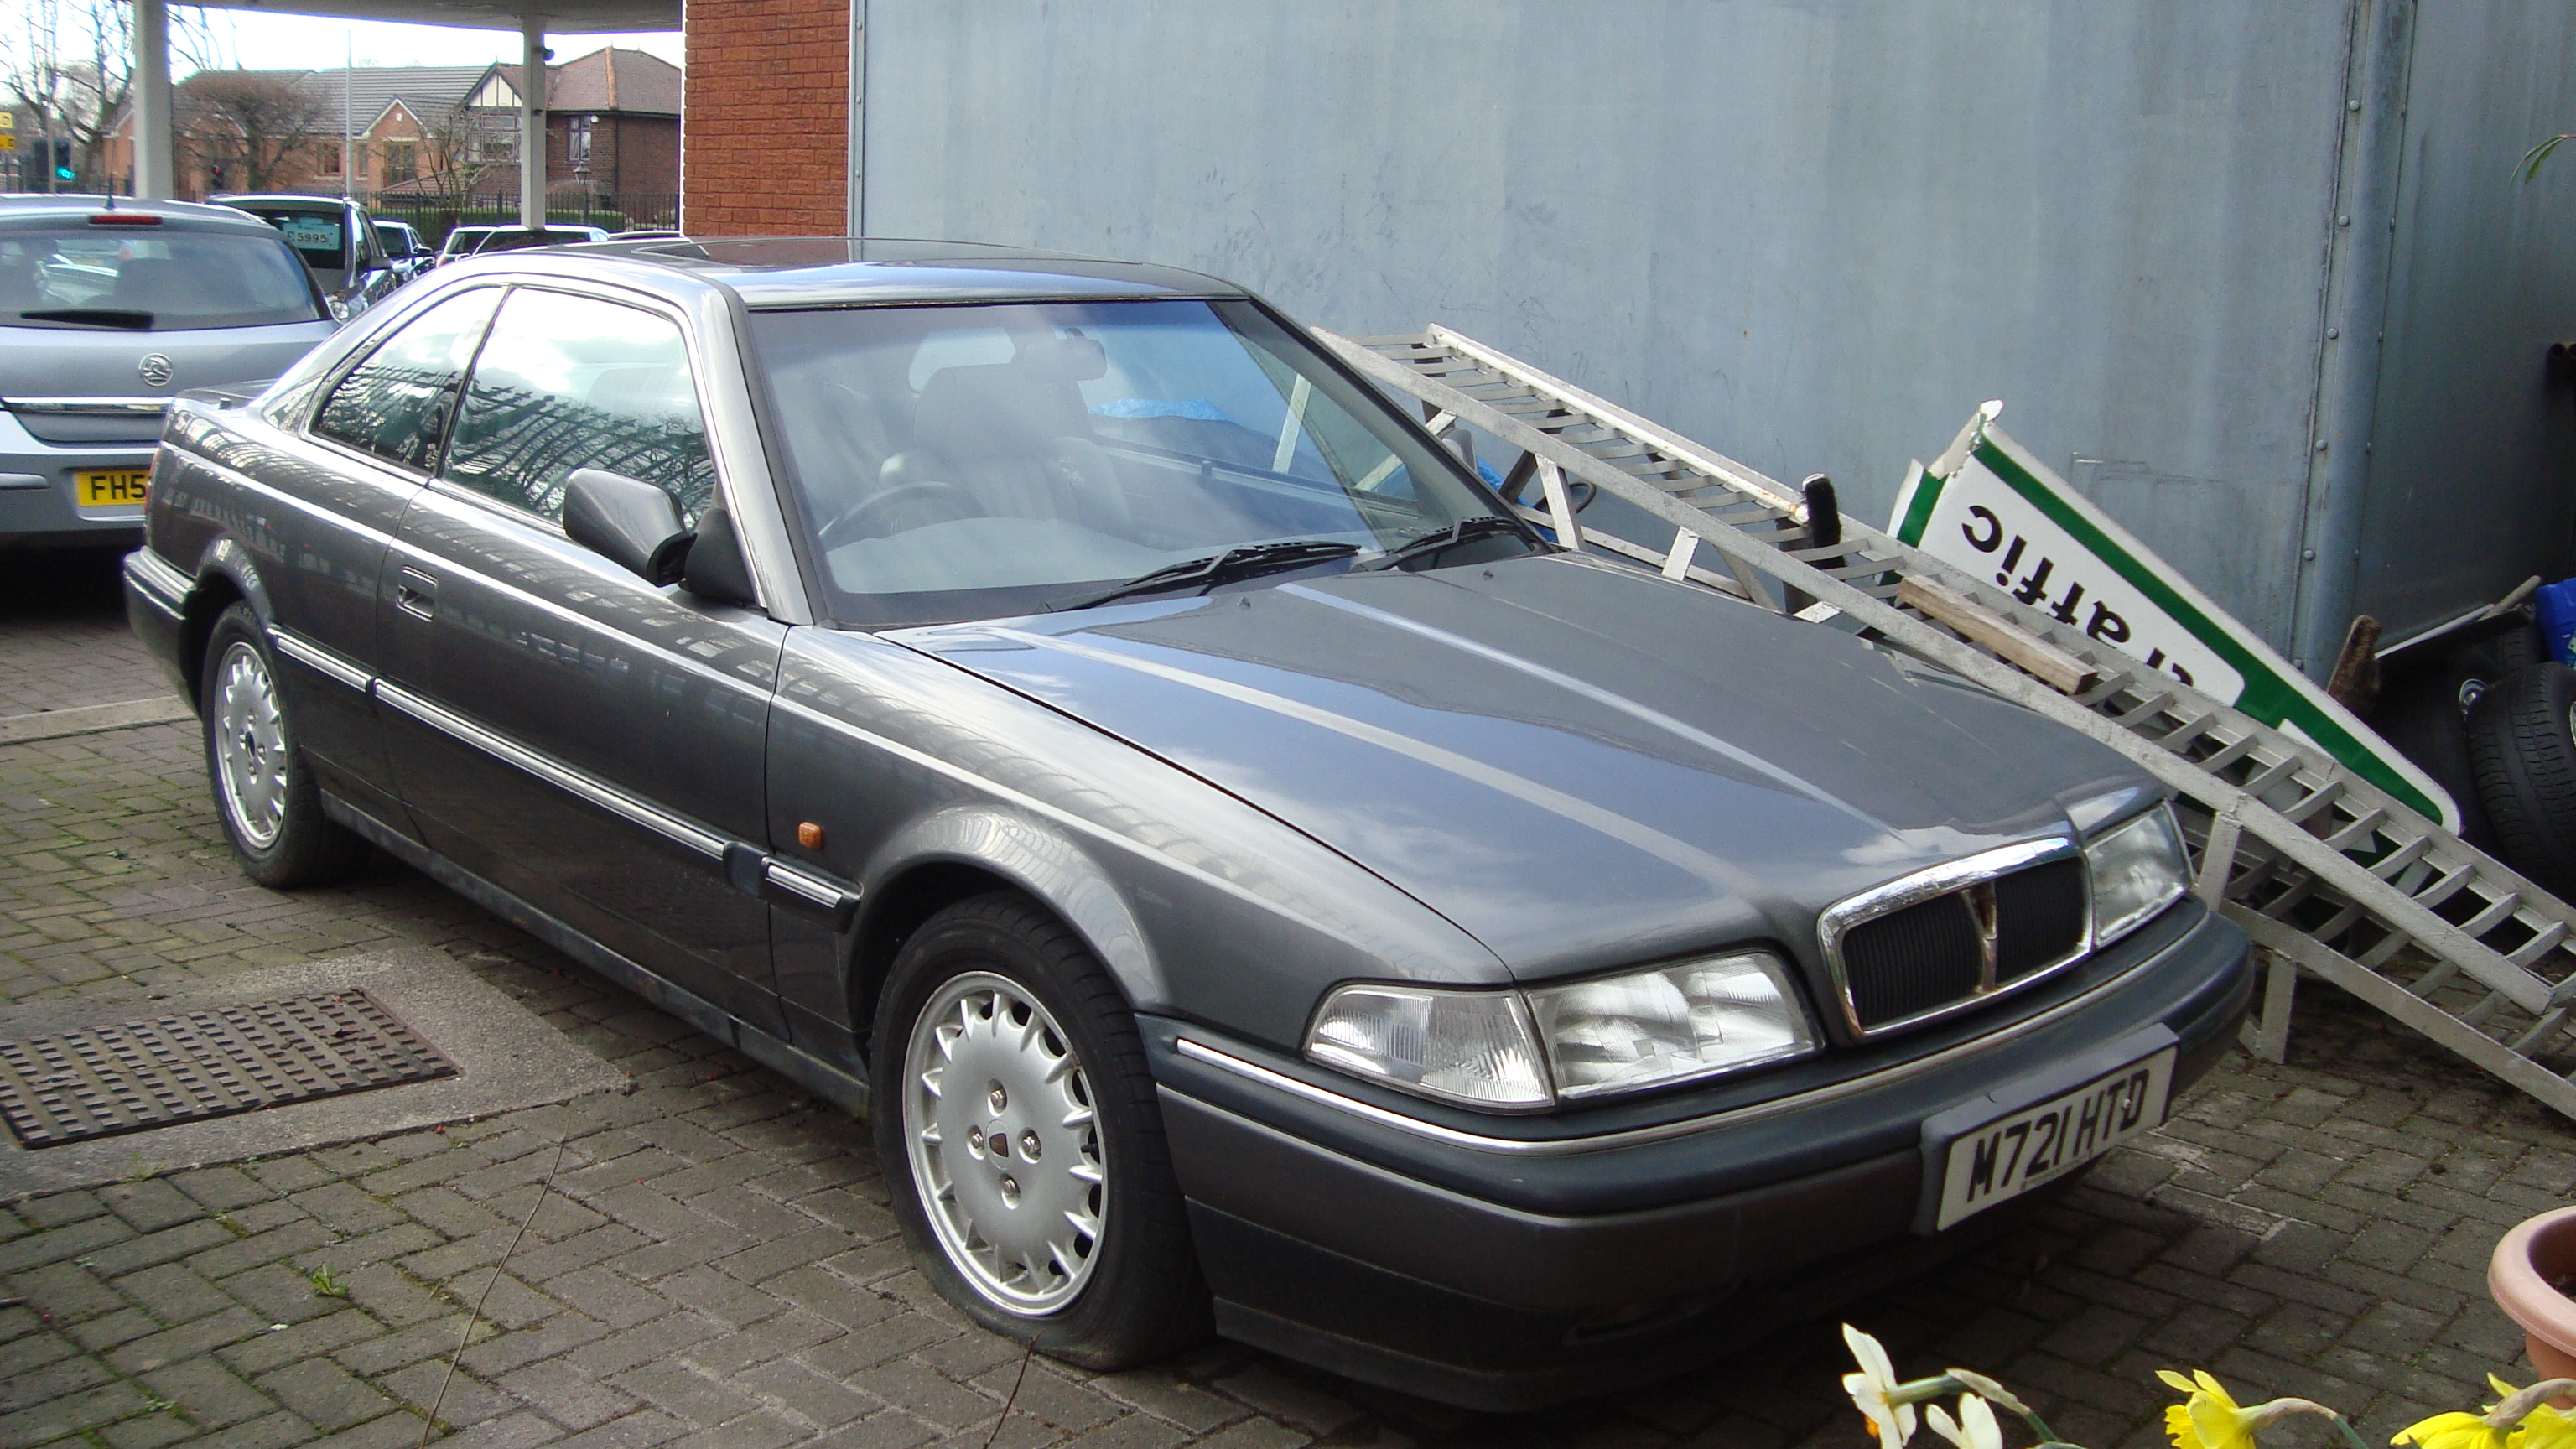 File:1994 Rover 827 Coupe (13358245015).jpg